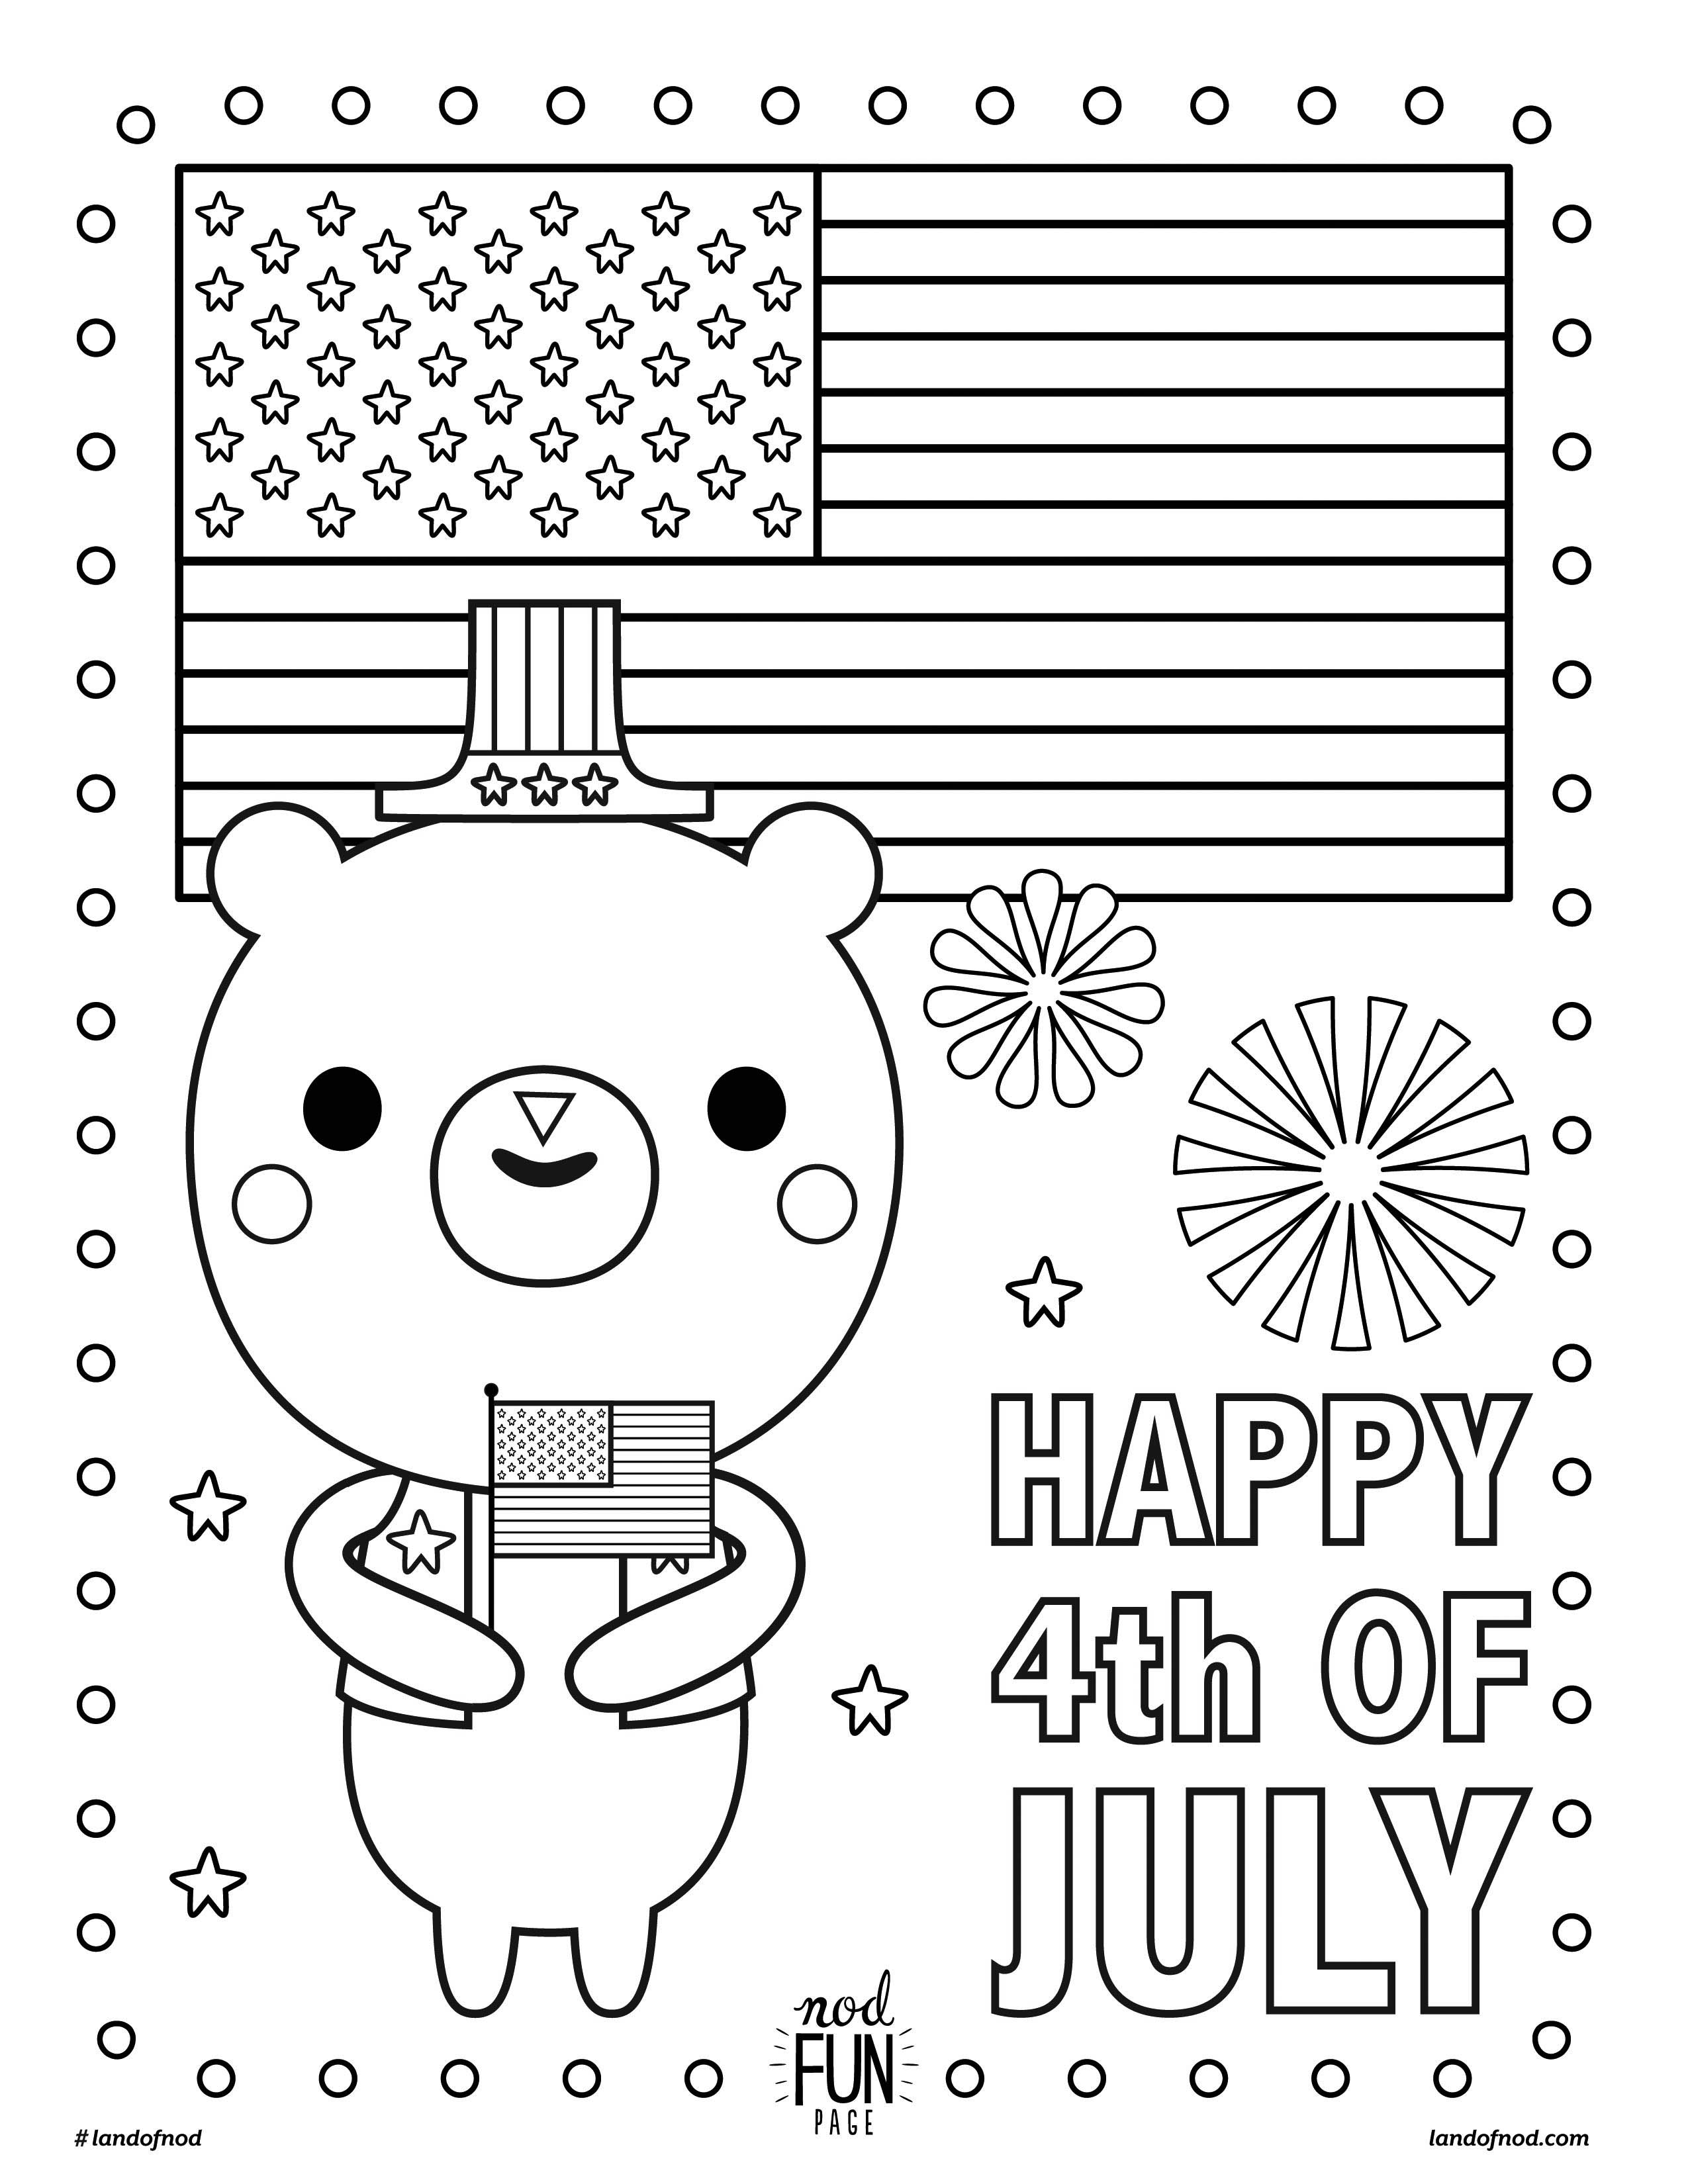 Free Printable Coloring Page 4th Of July Crate Kids Blog